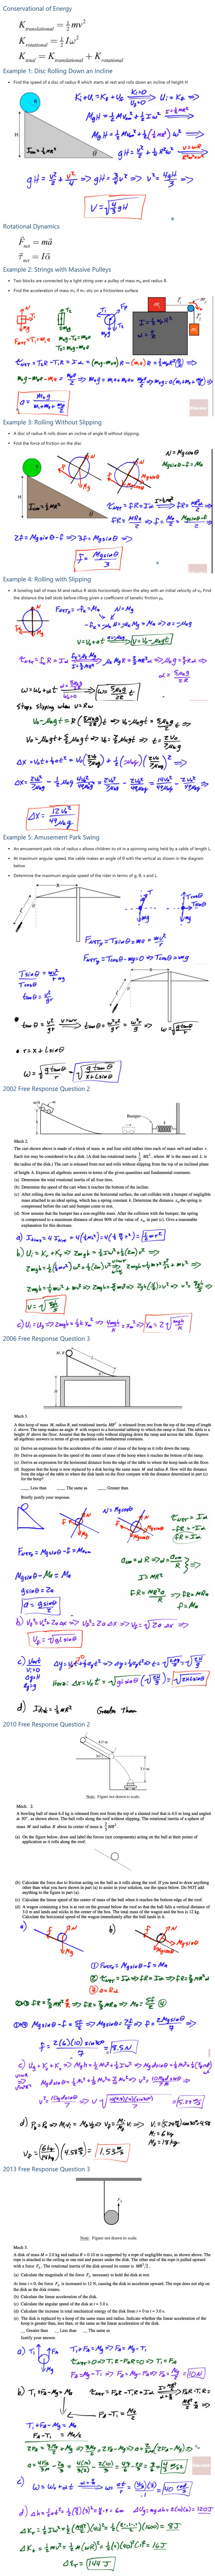 Conservational of Energy Example 1: Disc Rolling Down an Incline • Find the speed of a disc of radius R which starts at rest and rolls down an incline of height H Rotational Dynamics Example 2: Strings with Massive Pulleys • Two blocks are connected by a light string over a pulley of mass mp and radius R. • Find the acceleration of mass m2 if m1 stis on a frictionless surface Example 3: Rolling Without Slipping • A disc of radius R rolls down an incline of angle θ without slipping. • Find the force of friction on the disc Example 4: Rolling with Slipping • A bowling ball of mass M and radius R skids horizontally down the alley with an initial velocity of v0. Find the distance the ball skids before rilling given a coefficient of kenetic friction μk Example 5: Amusement Park Swing • An amusement park ride of radius x allows children to sit in a spinning swing held by a cable of length L. • At maximum angular speed, the cable makes an angle of θ with the vertical as shown in the diagram below • Determine the maximum angular speed of the rider in terms of g, θ, x and L. 2002 Free Response Question 2 2006 Free Response Question 3 2010 Free Response Question 2 2013 Free Response Question 3